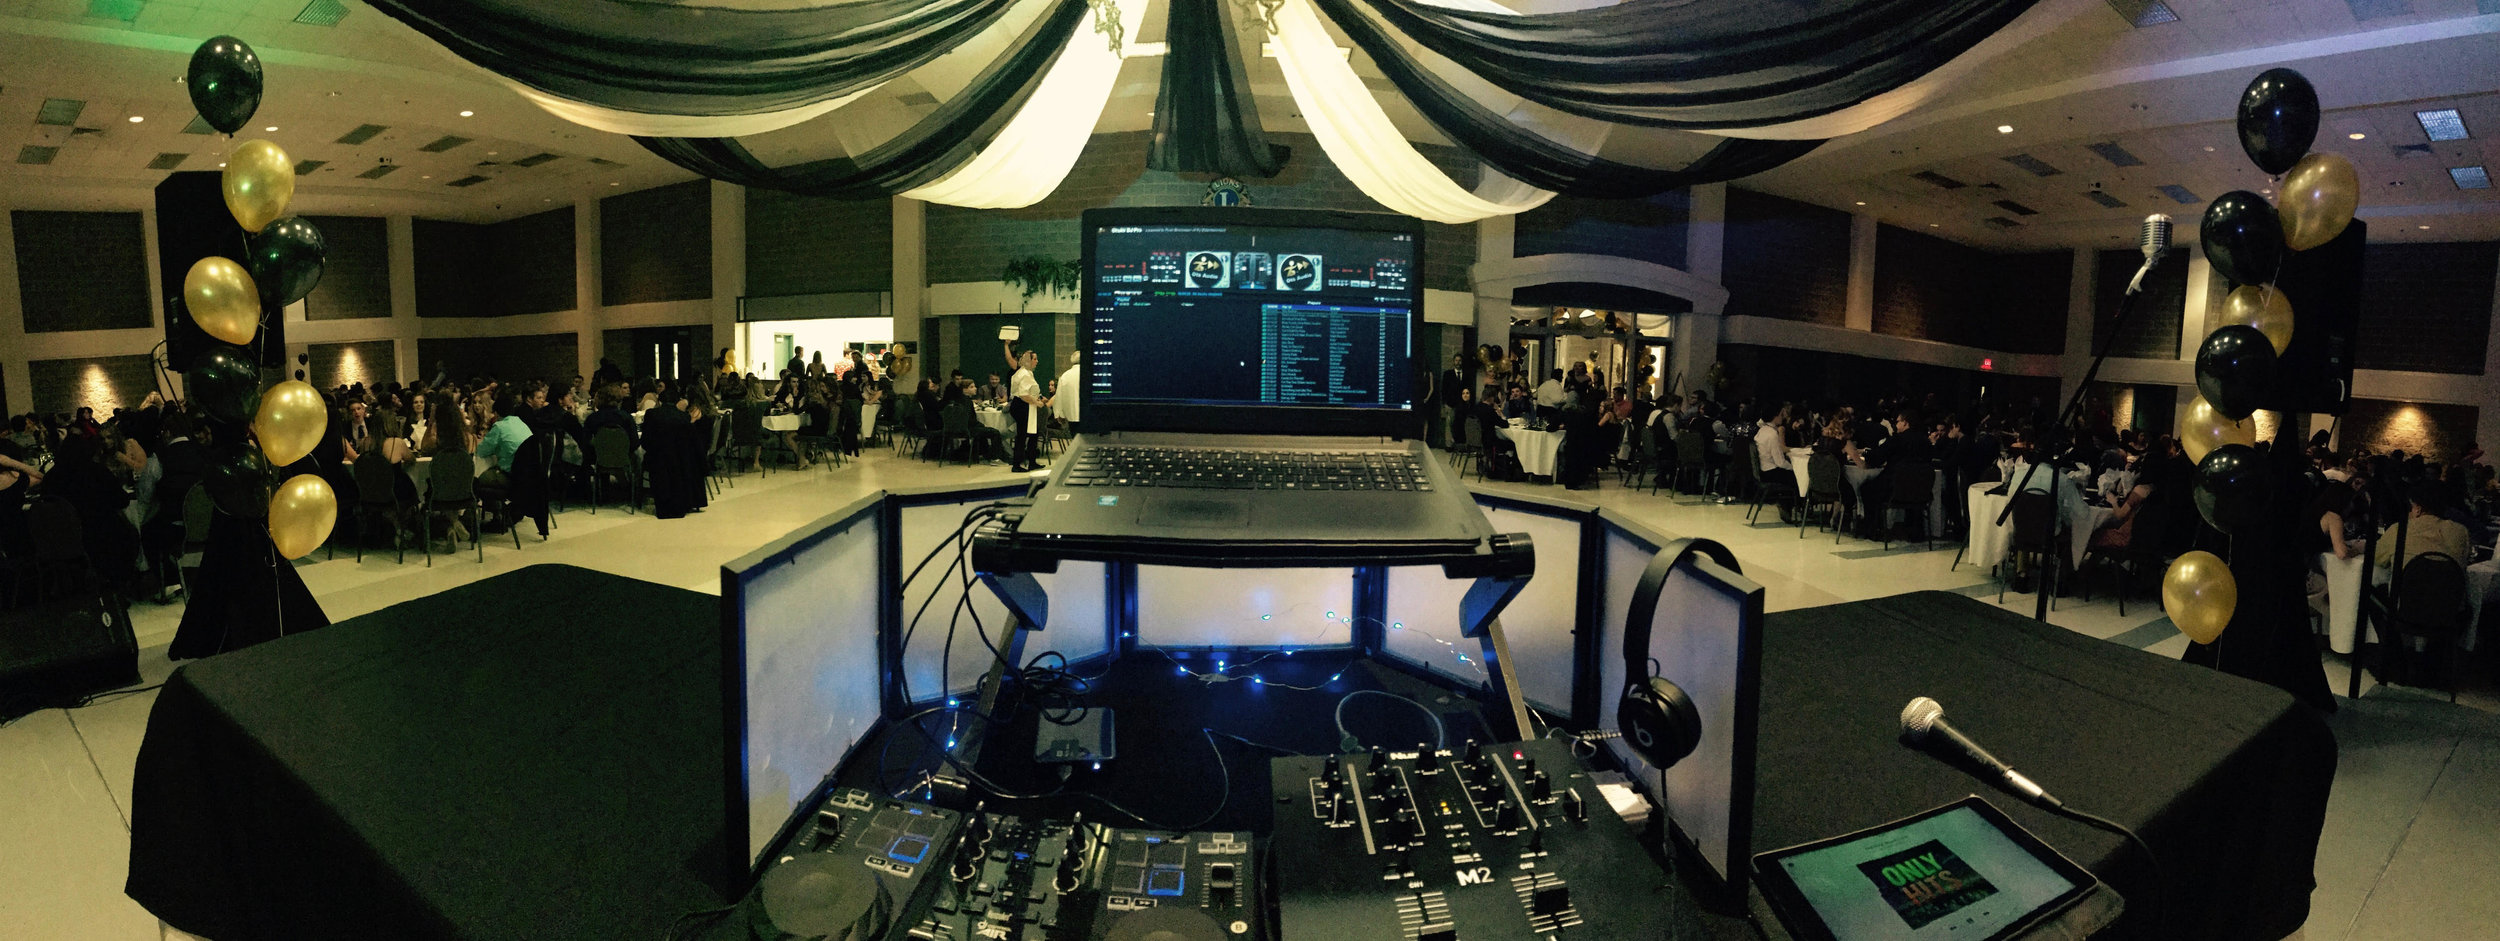 High School Semi Formal - Greater Fort Erie Secondary School